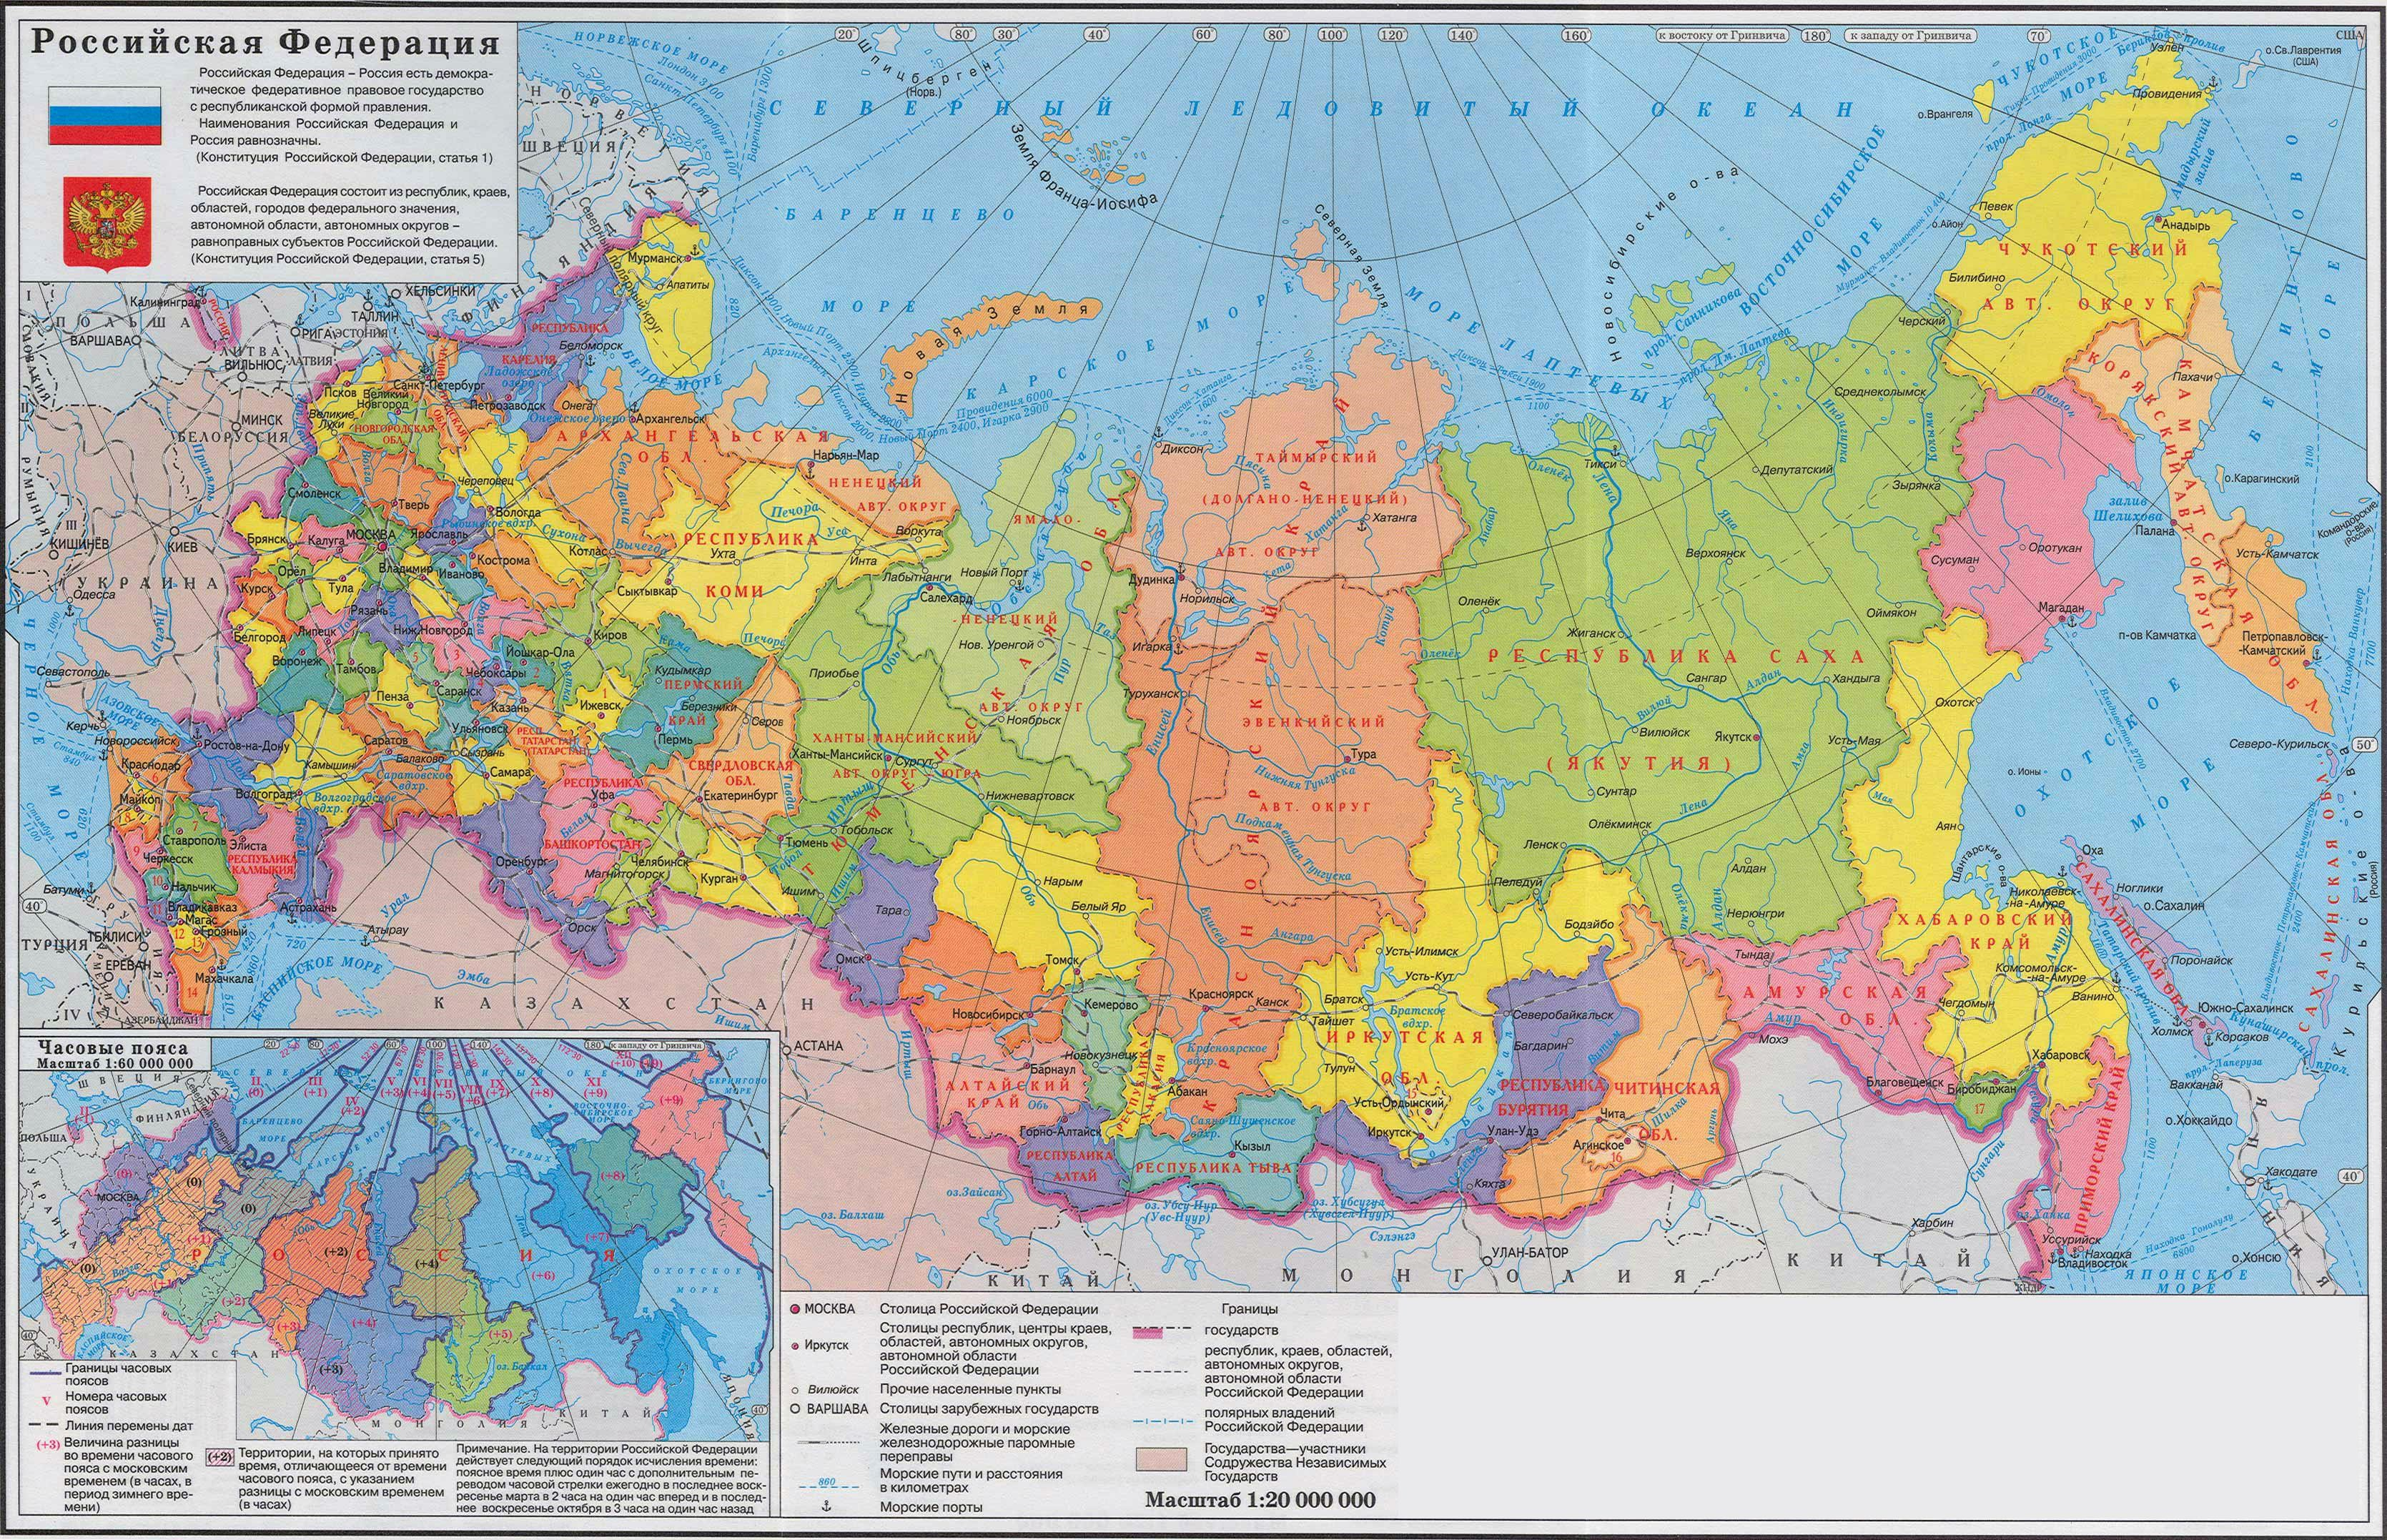 Largepoliticalandadministrativemapofrussiawithcitiesjpg - Russia administrative map